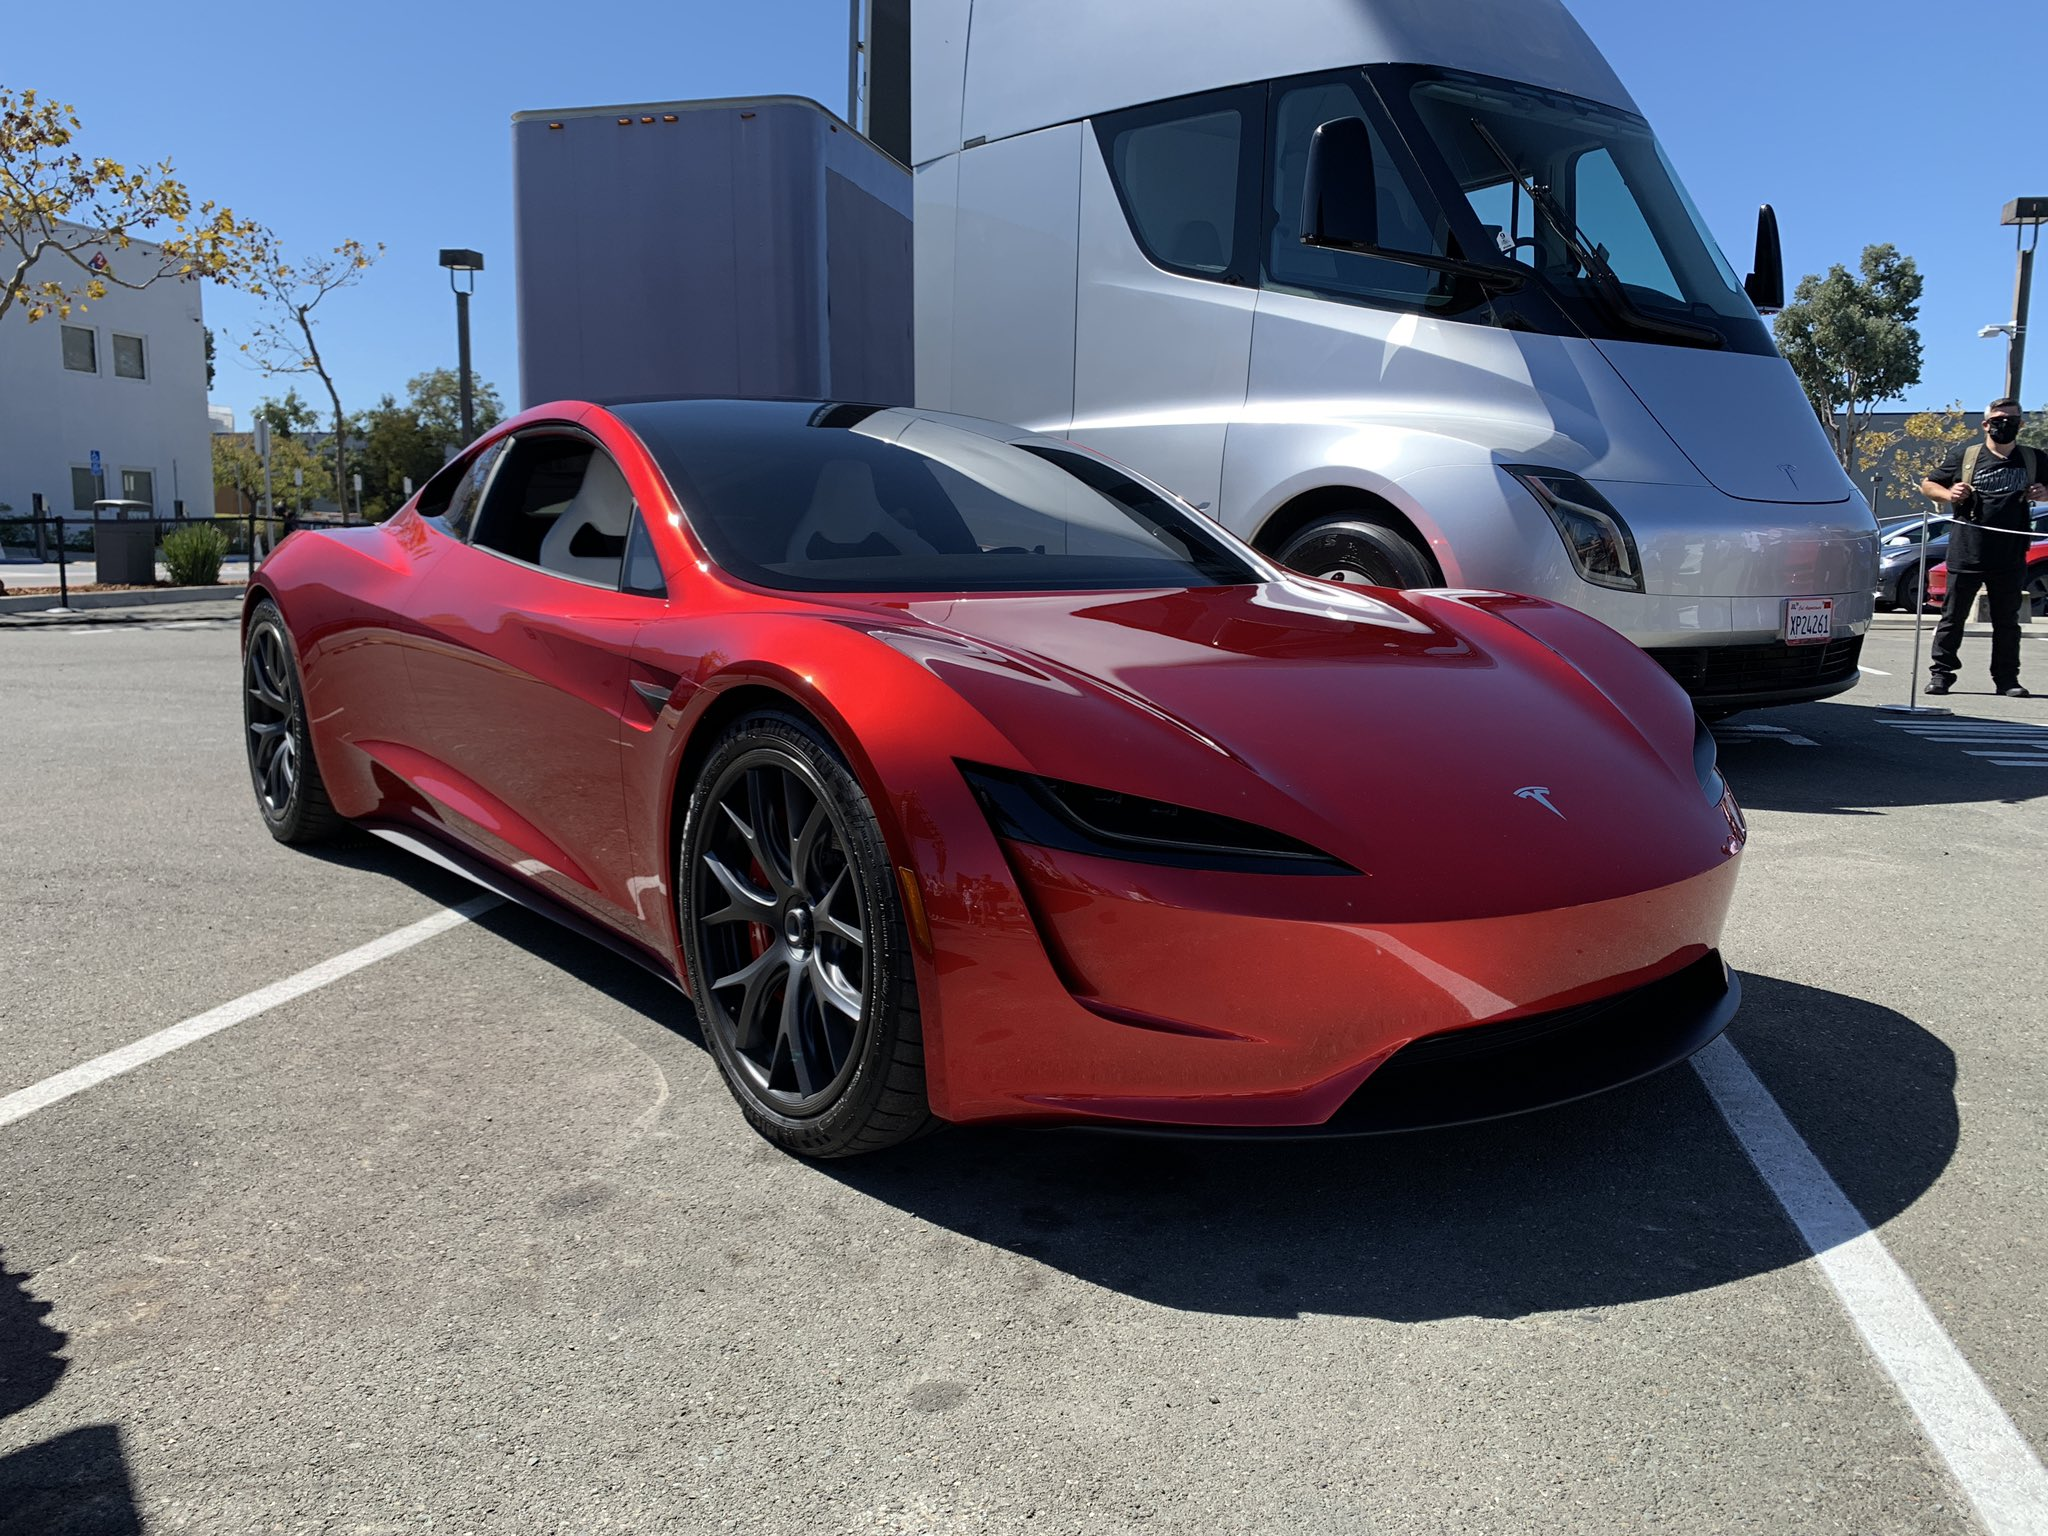 Tesla Roadster and Semi at Tesla Battery Day 2020